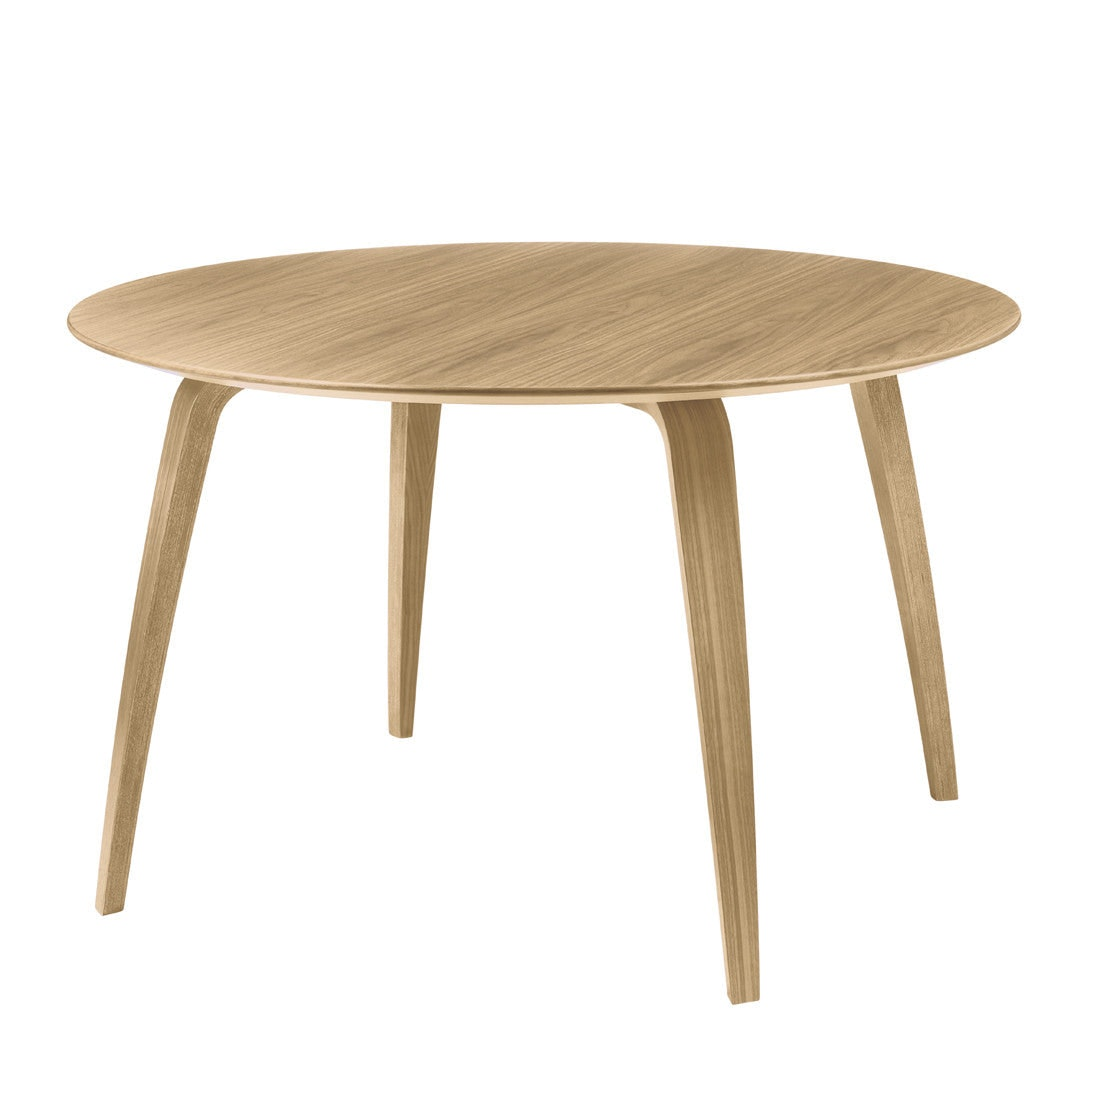 Gubi Dining Table Round by Komplot Design haus174 : gubidiningtableroundoakhs from hauslondon.com size 2048 x 2048 jpeg 190kB